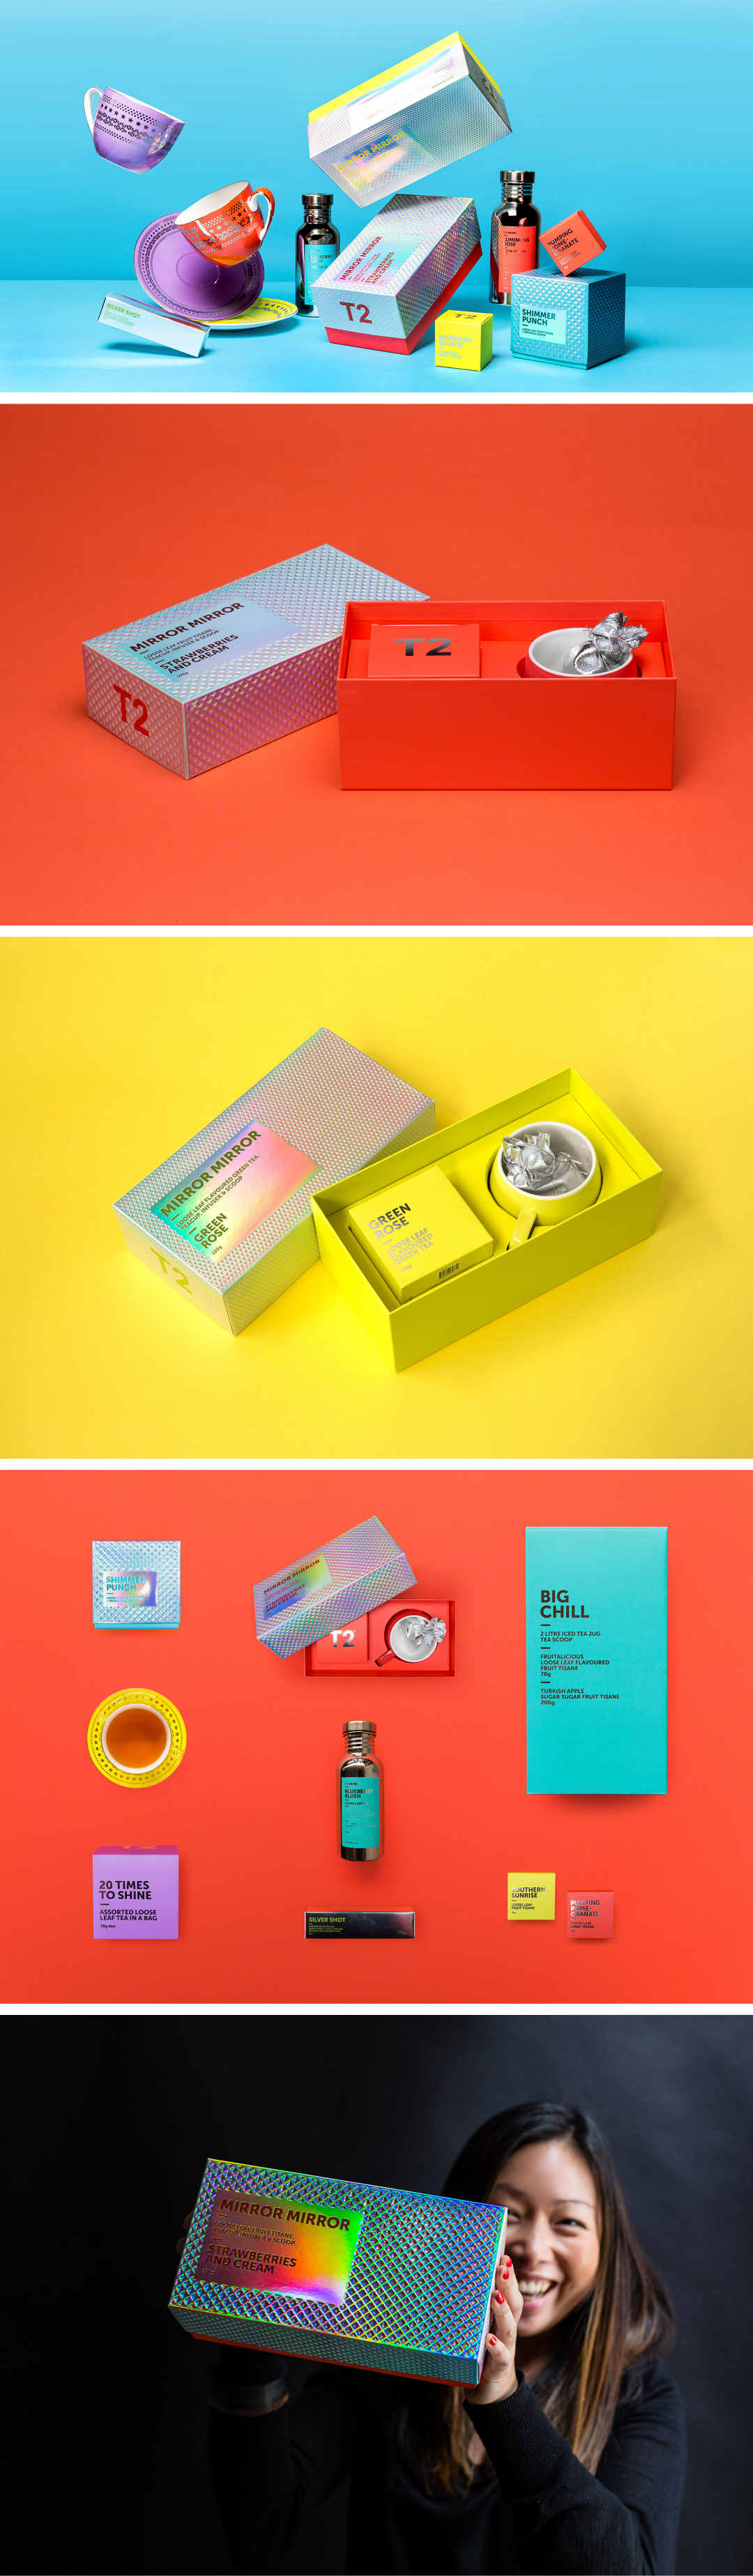 Graphic Design,Packaging,Product Design